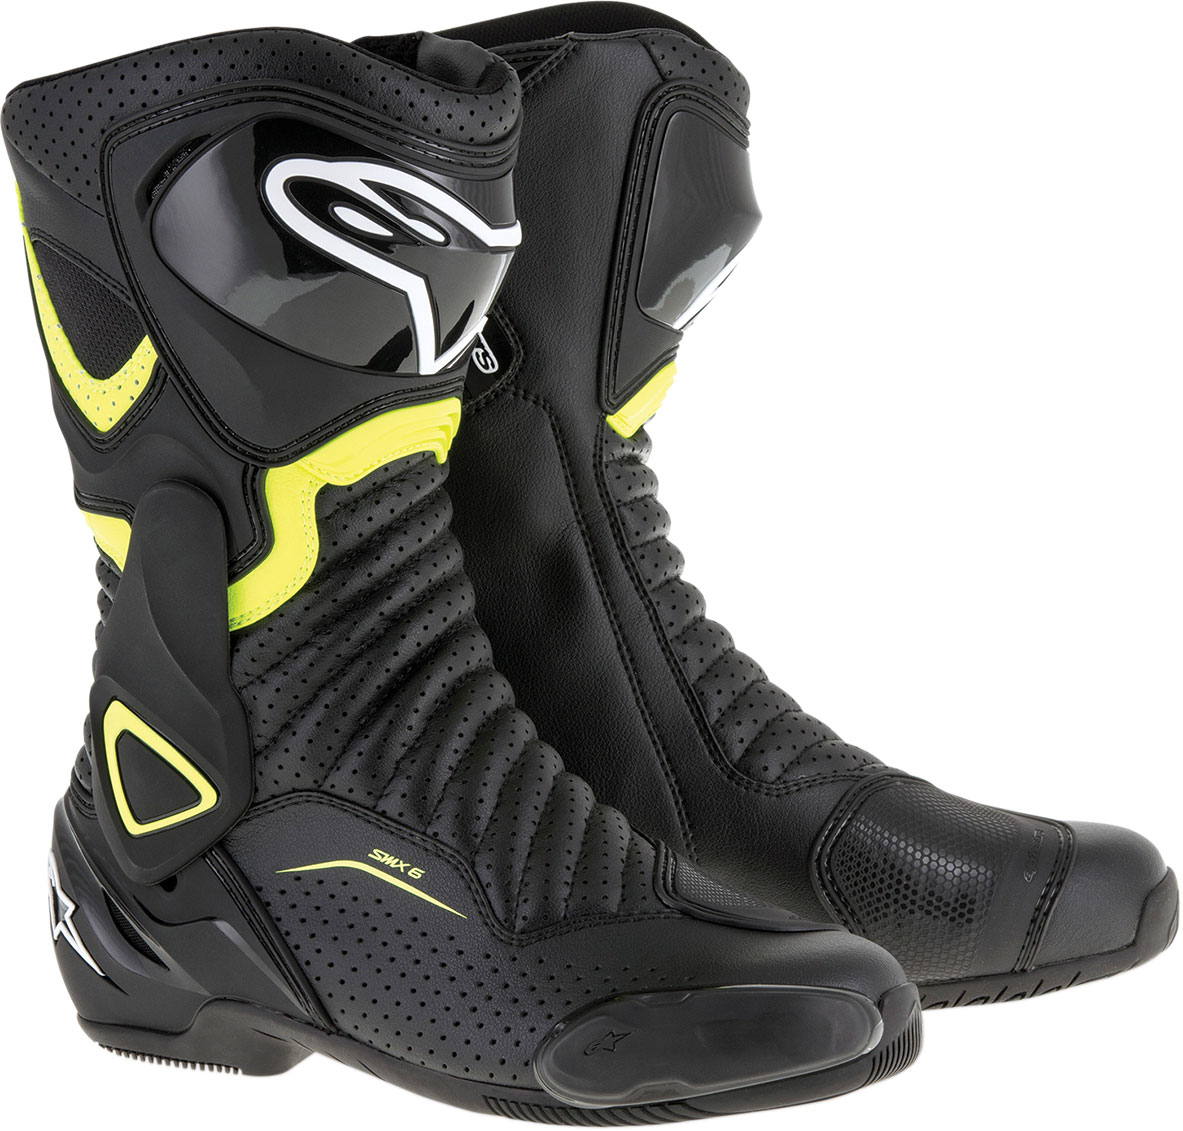 Alpinestars SMX-6 V2 Vented Road/Track Motorcycle Boots (Black/Yellow)